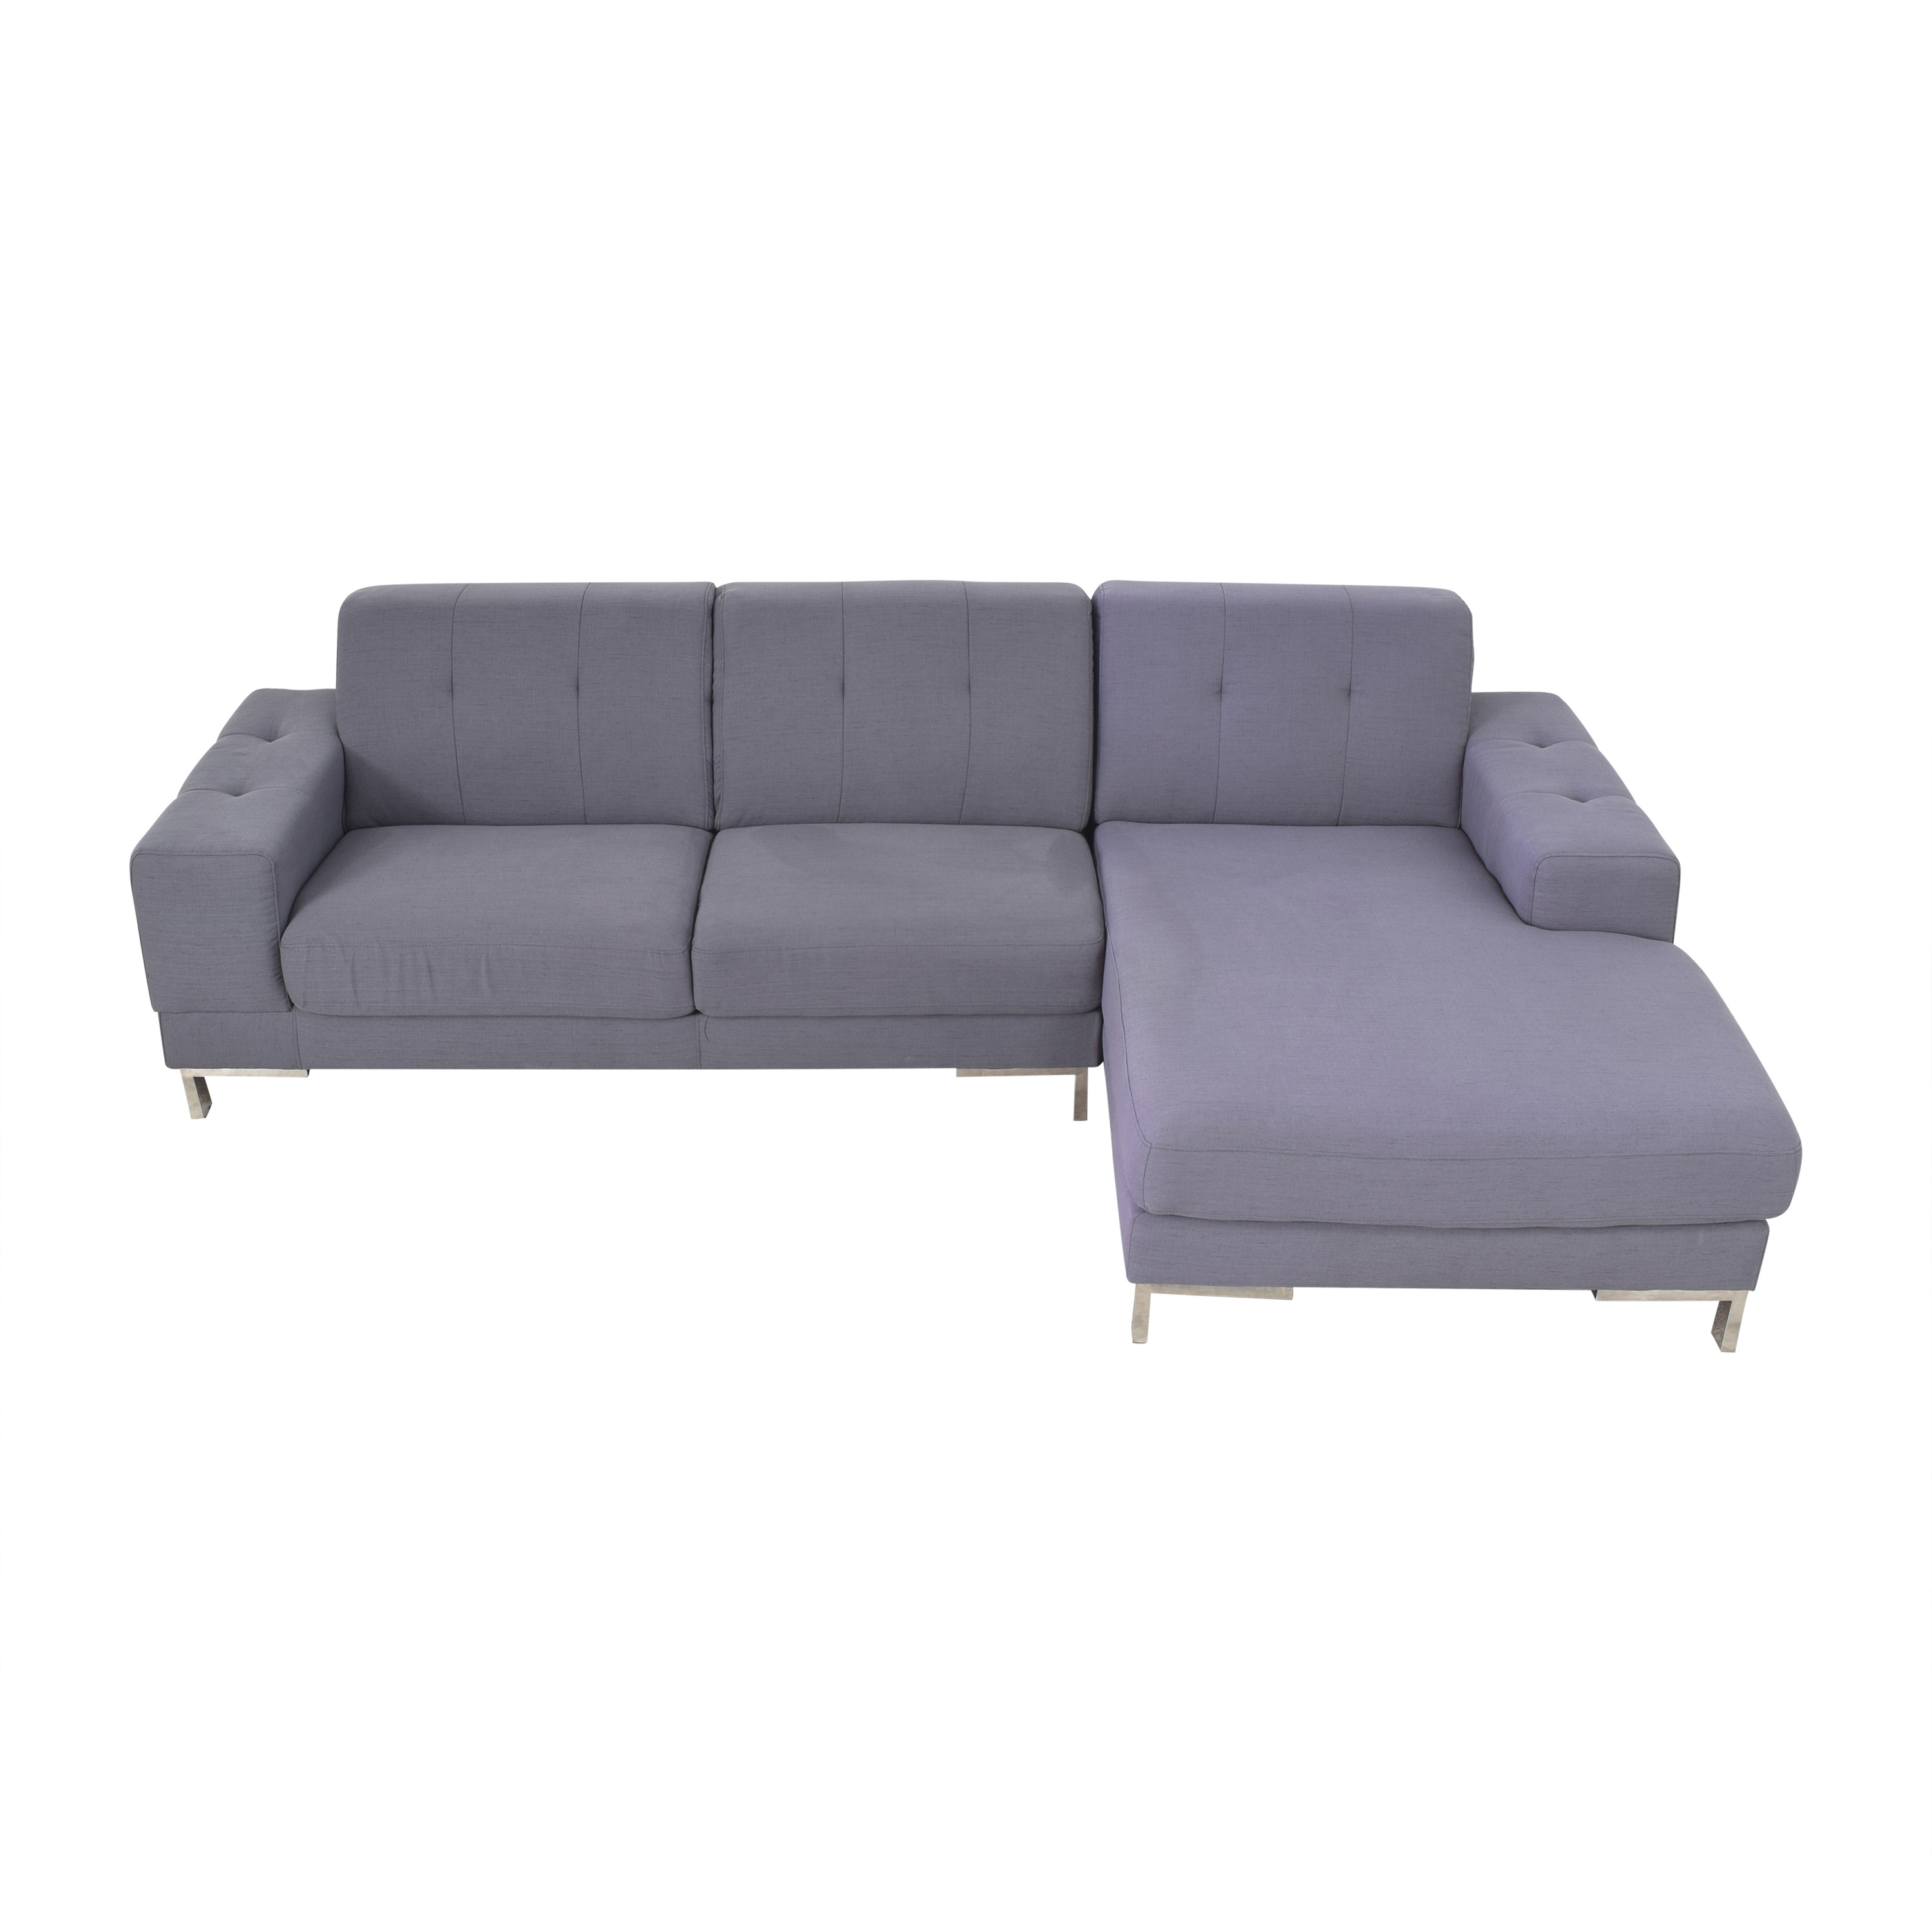 Overstock Overstock Halsted Tufted Chaise Sectional Sofa second hand